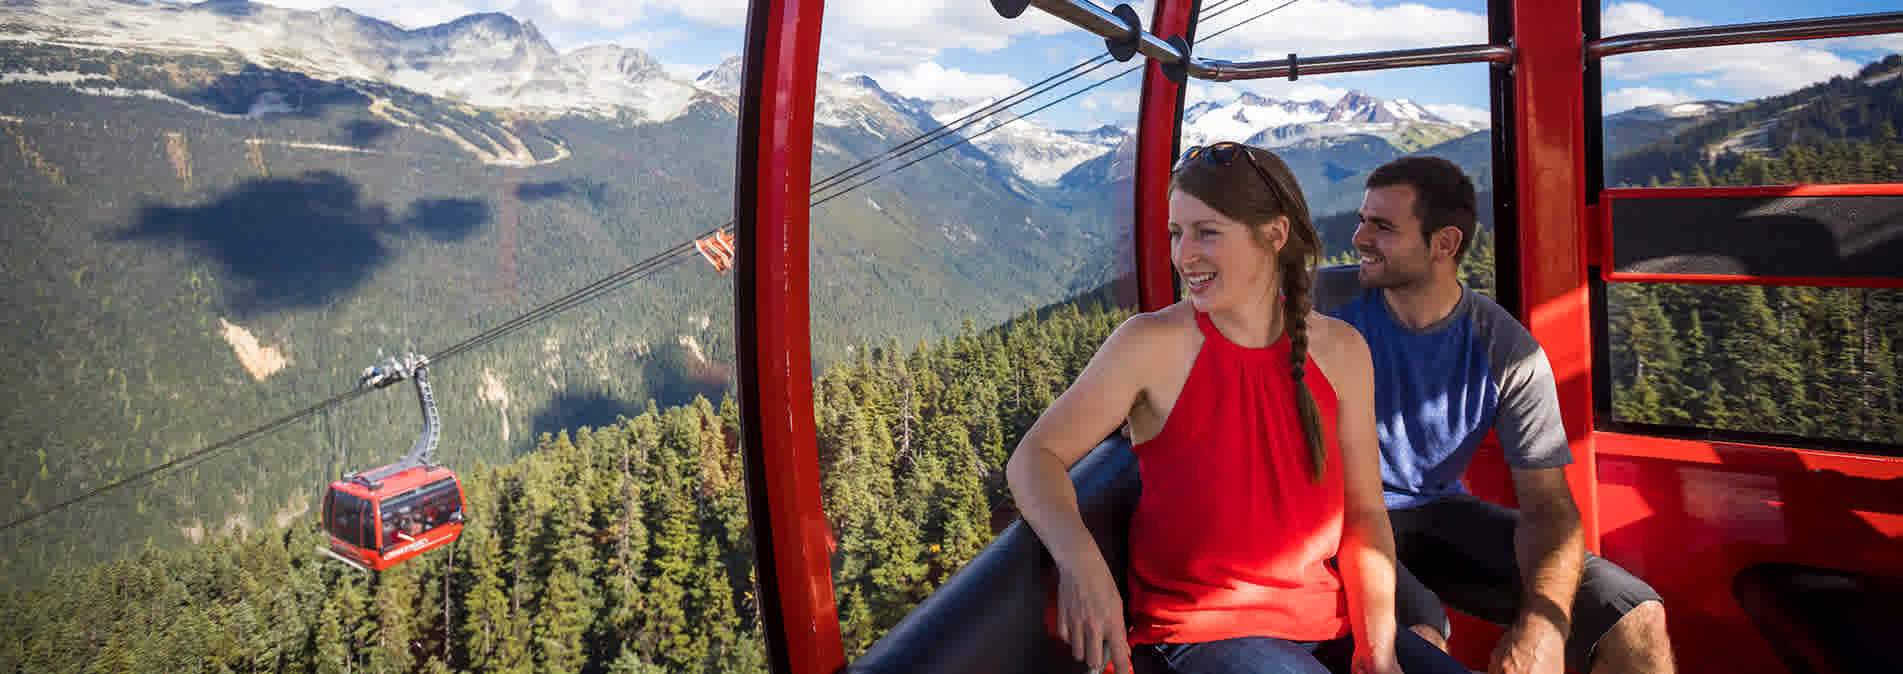 Sightseeing on the PEAK 2 PEAK Gondola in Whistler BC